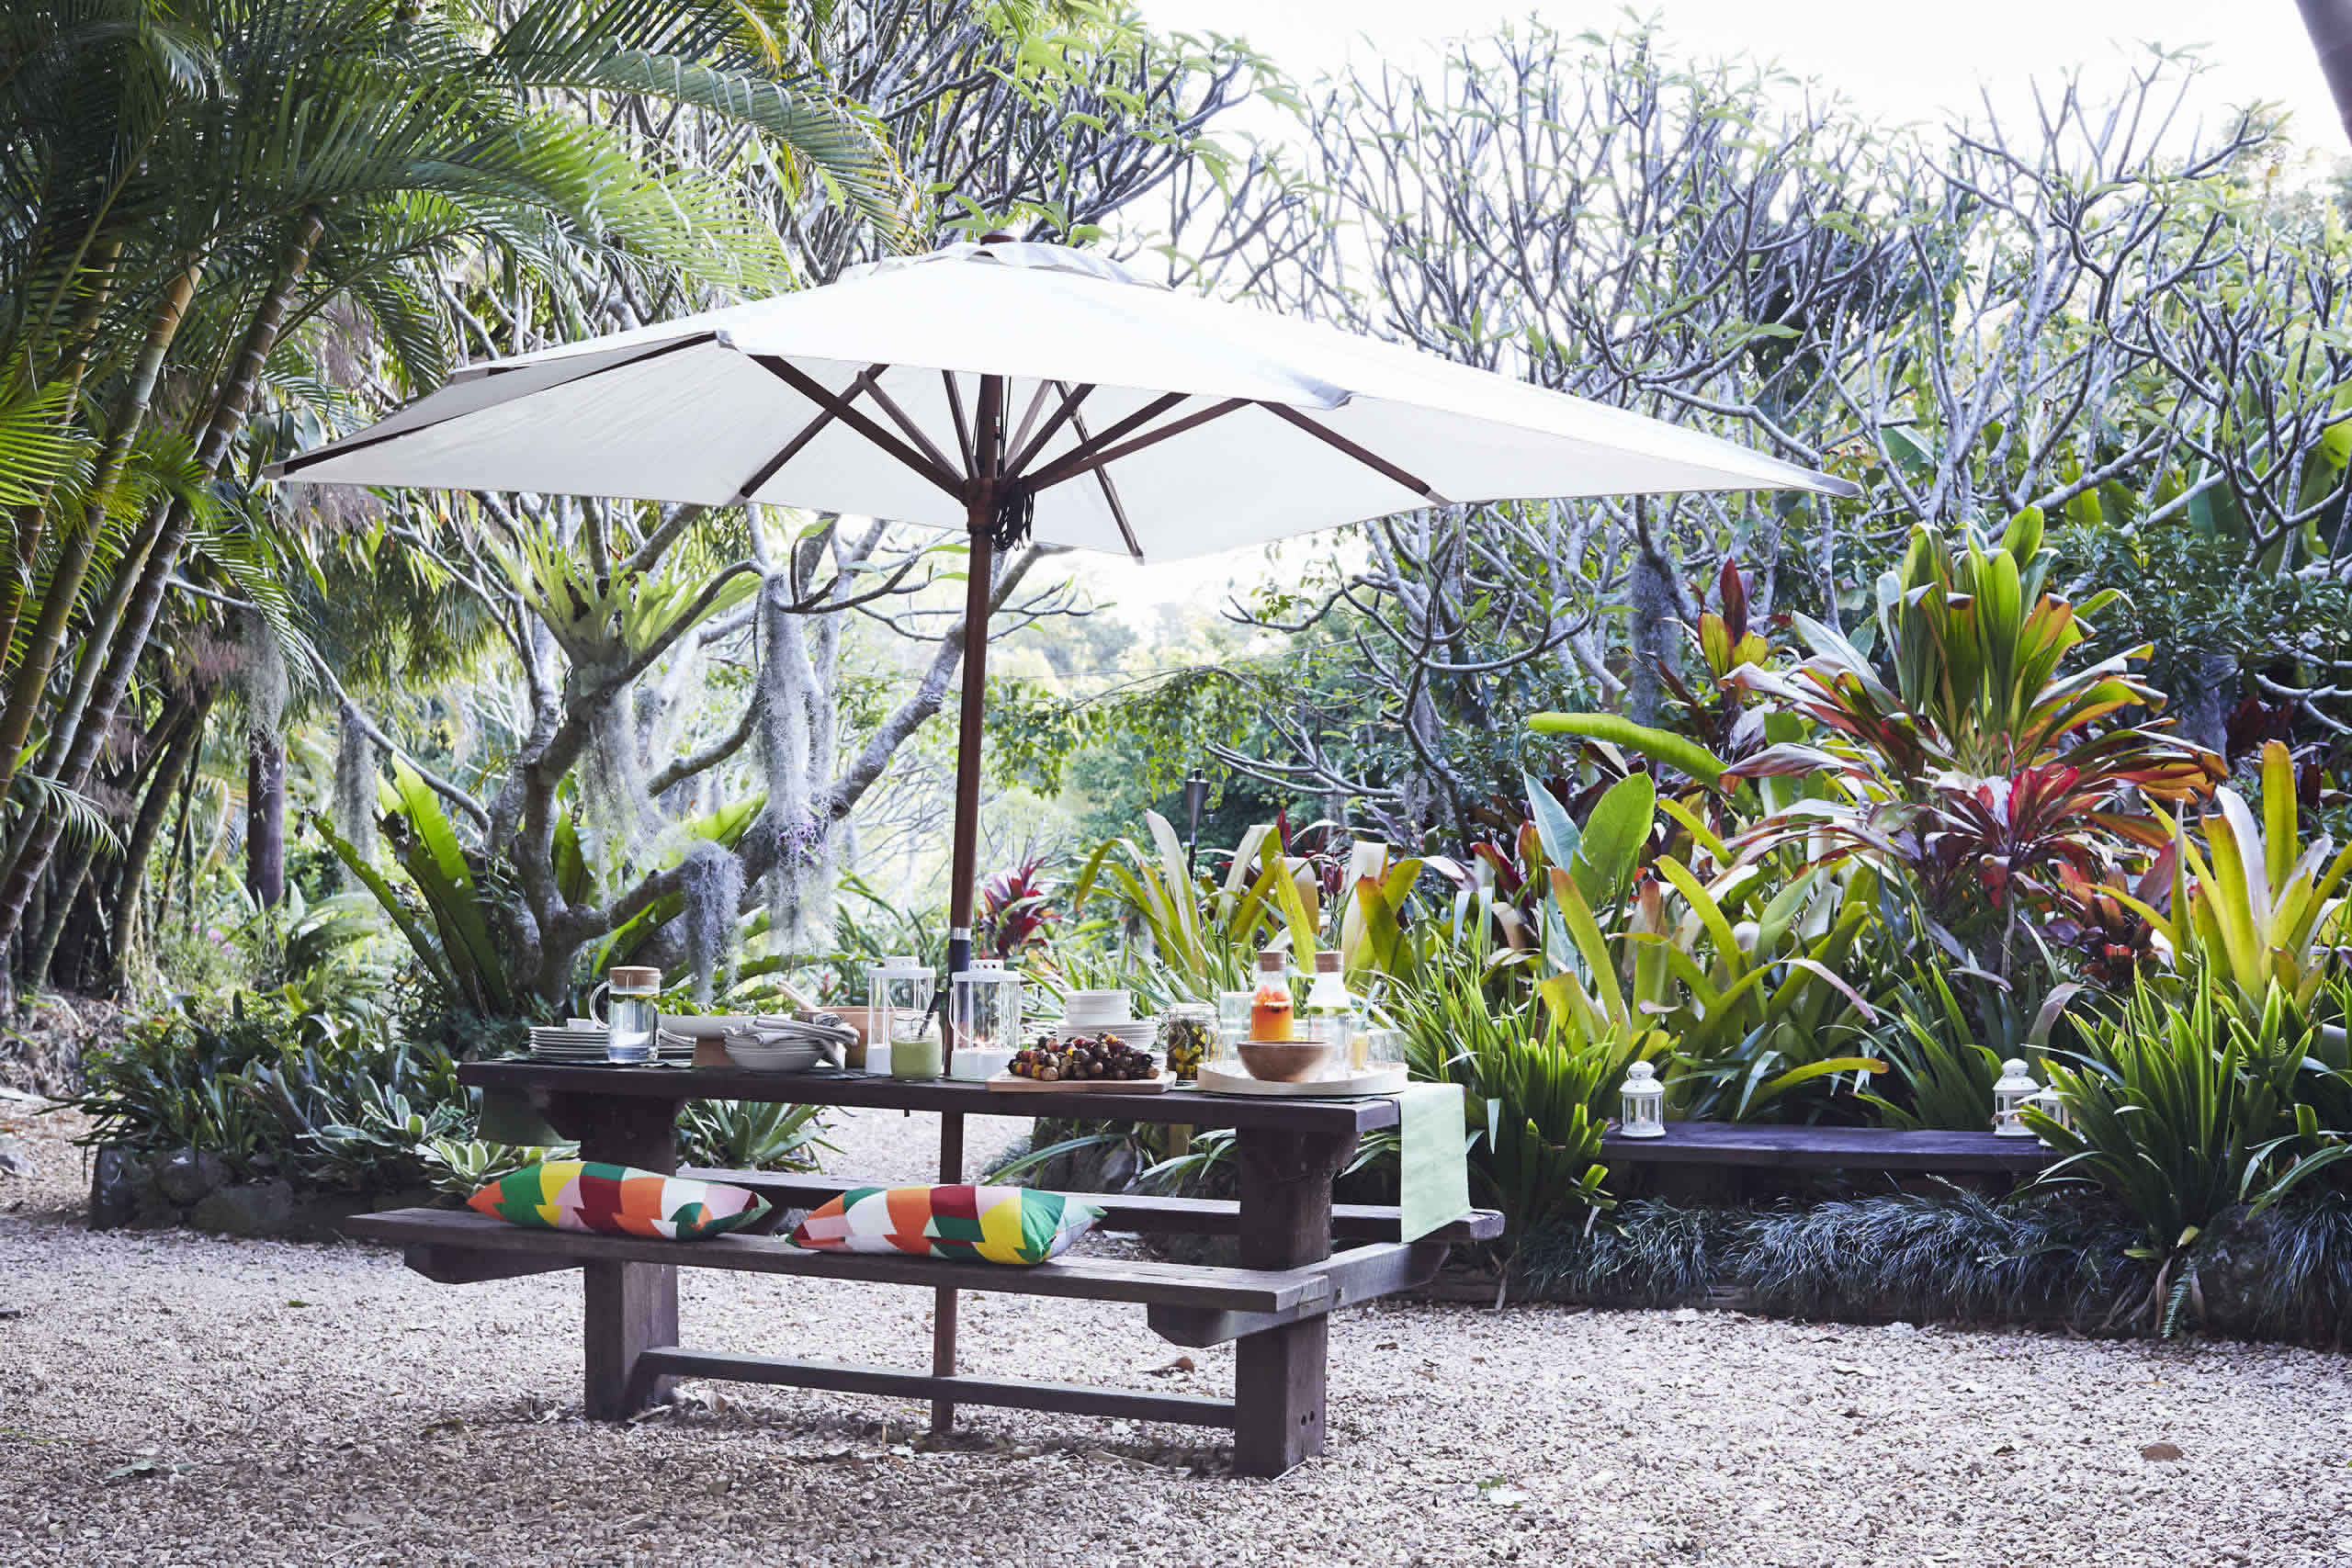 IKEA Ideas - Home visit: Host a colorful outdoor feast